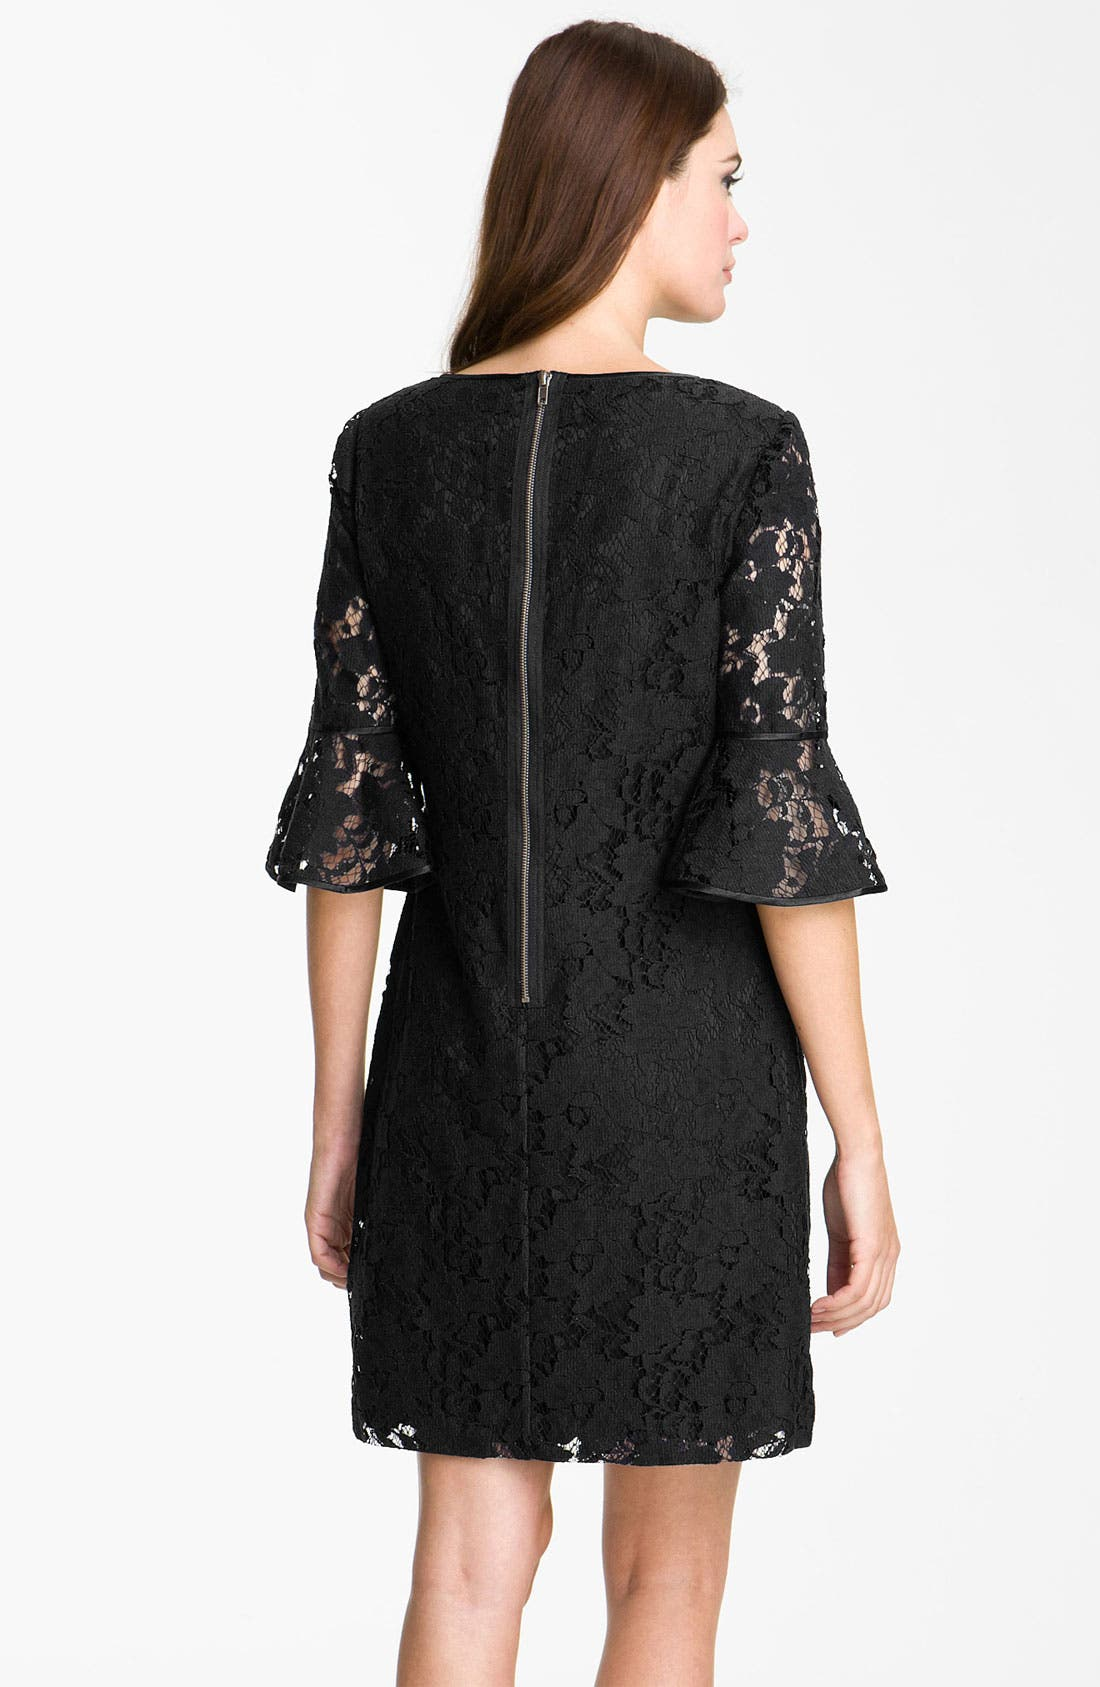 ADRIANNA PAPELL, Ruffle Sleeve Lace Dress, Alternate thumbnail 3, color, 001